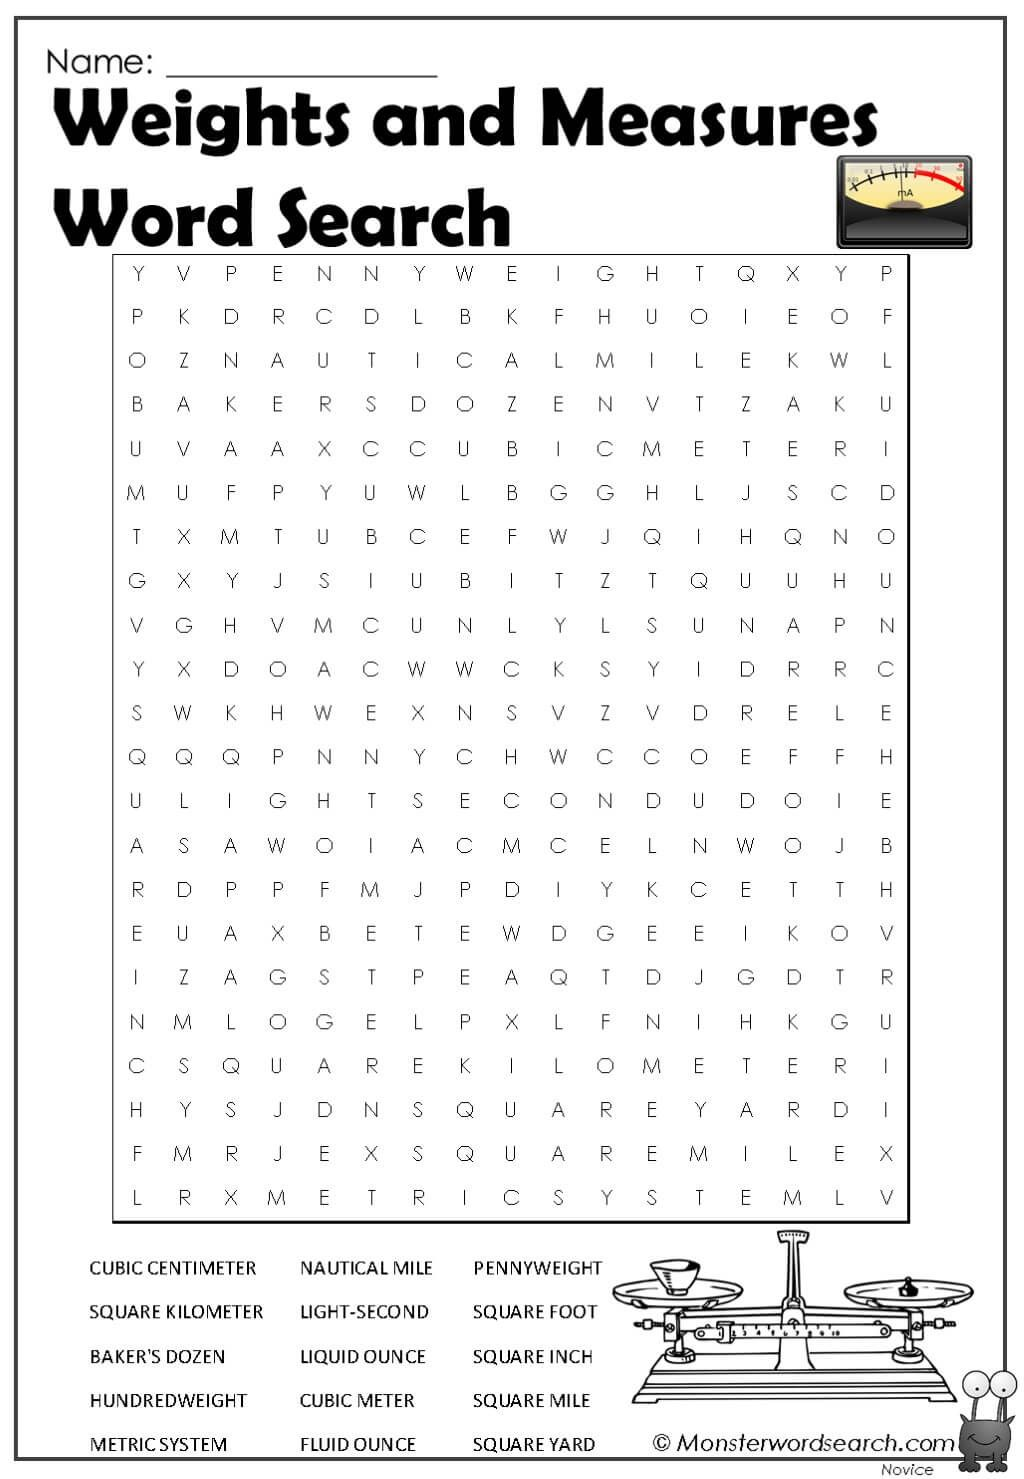 Weights And Measures Word Search In